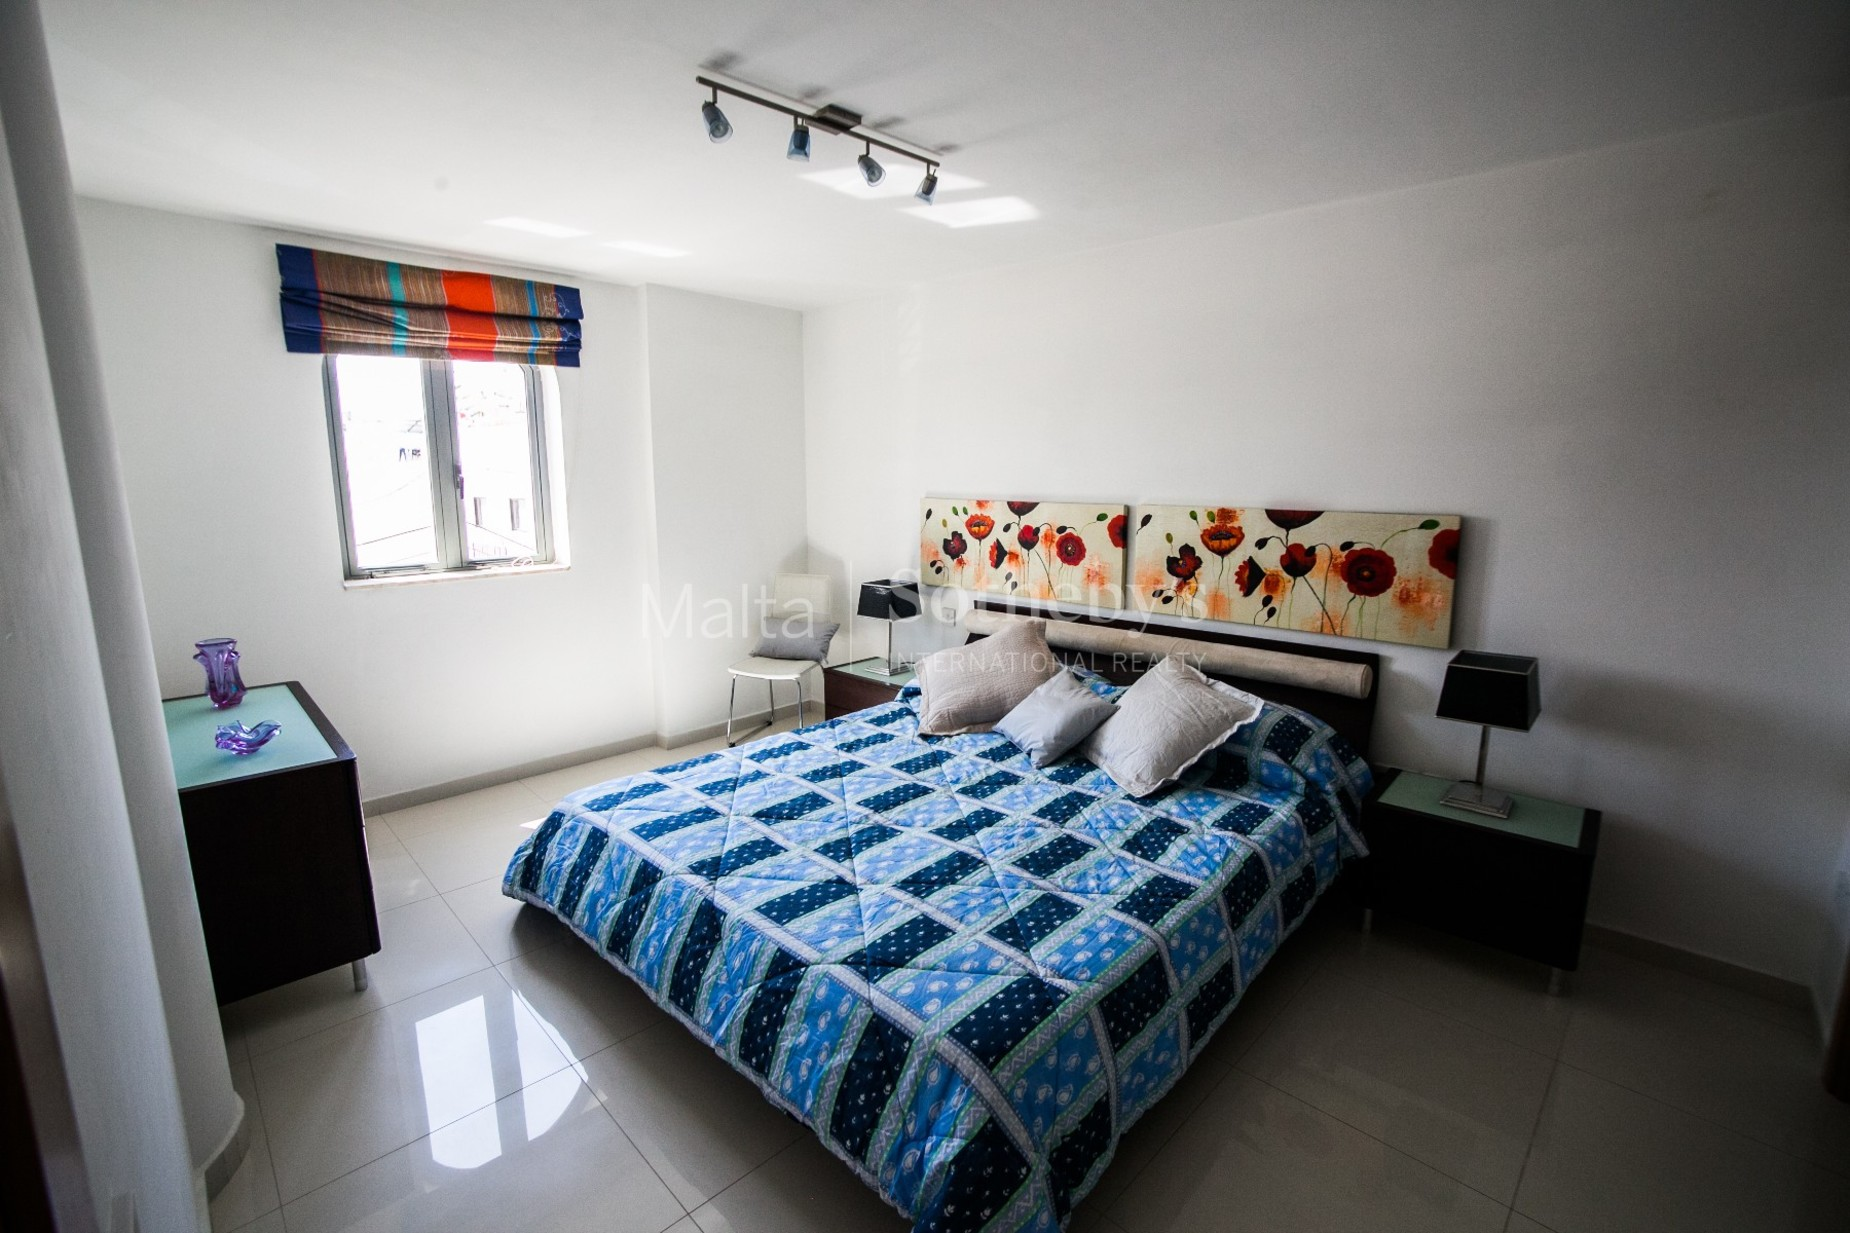 3 bed Apartment For Rent in Swieqi, Swieqi - thumb 8